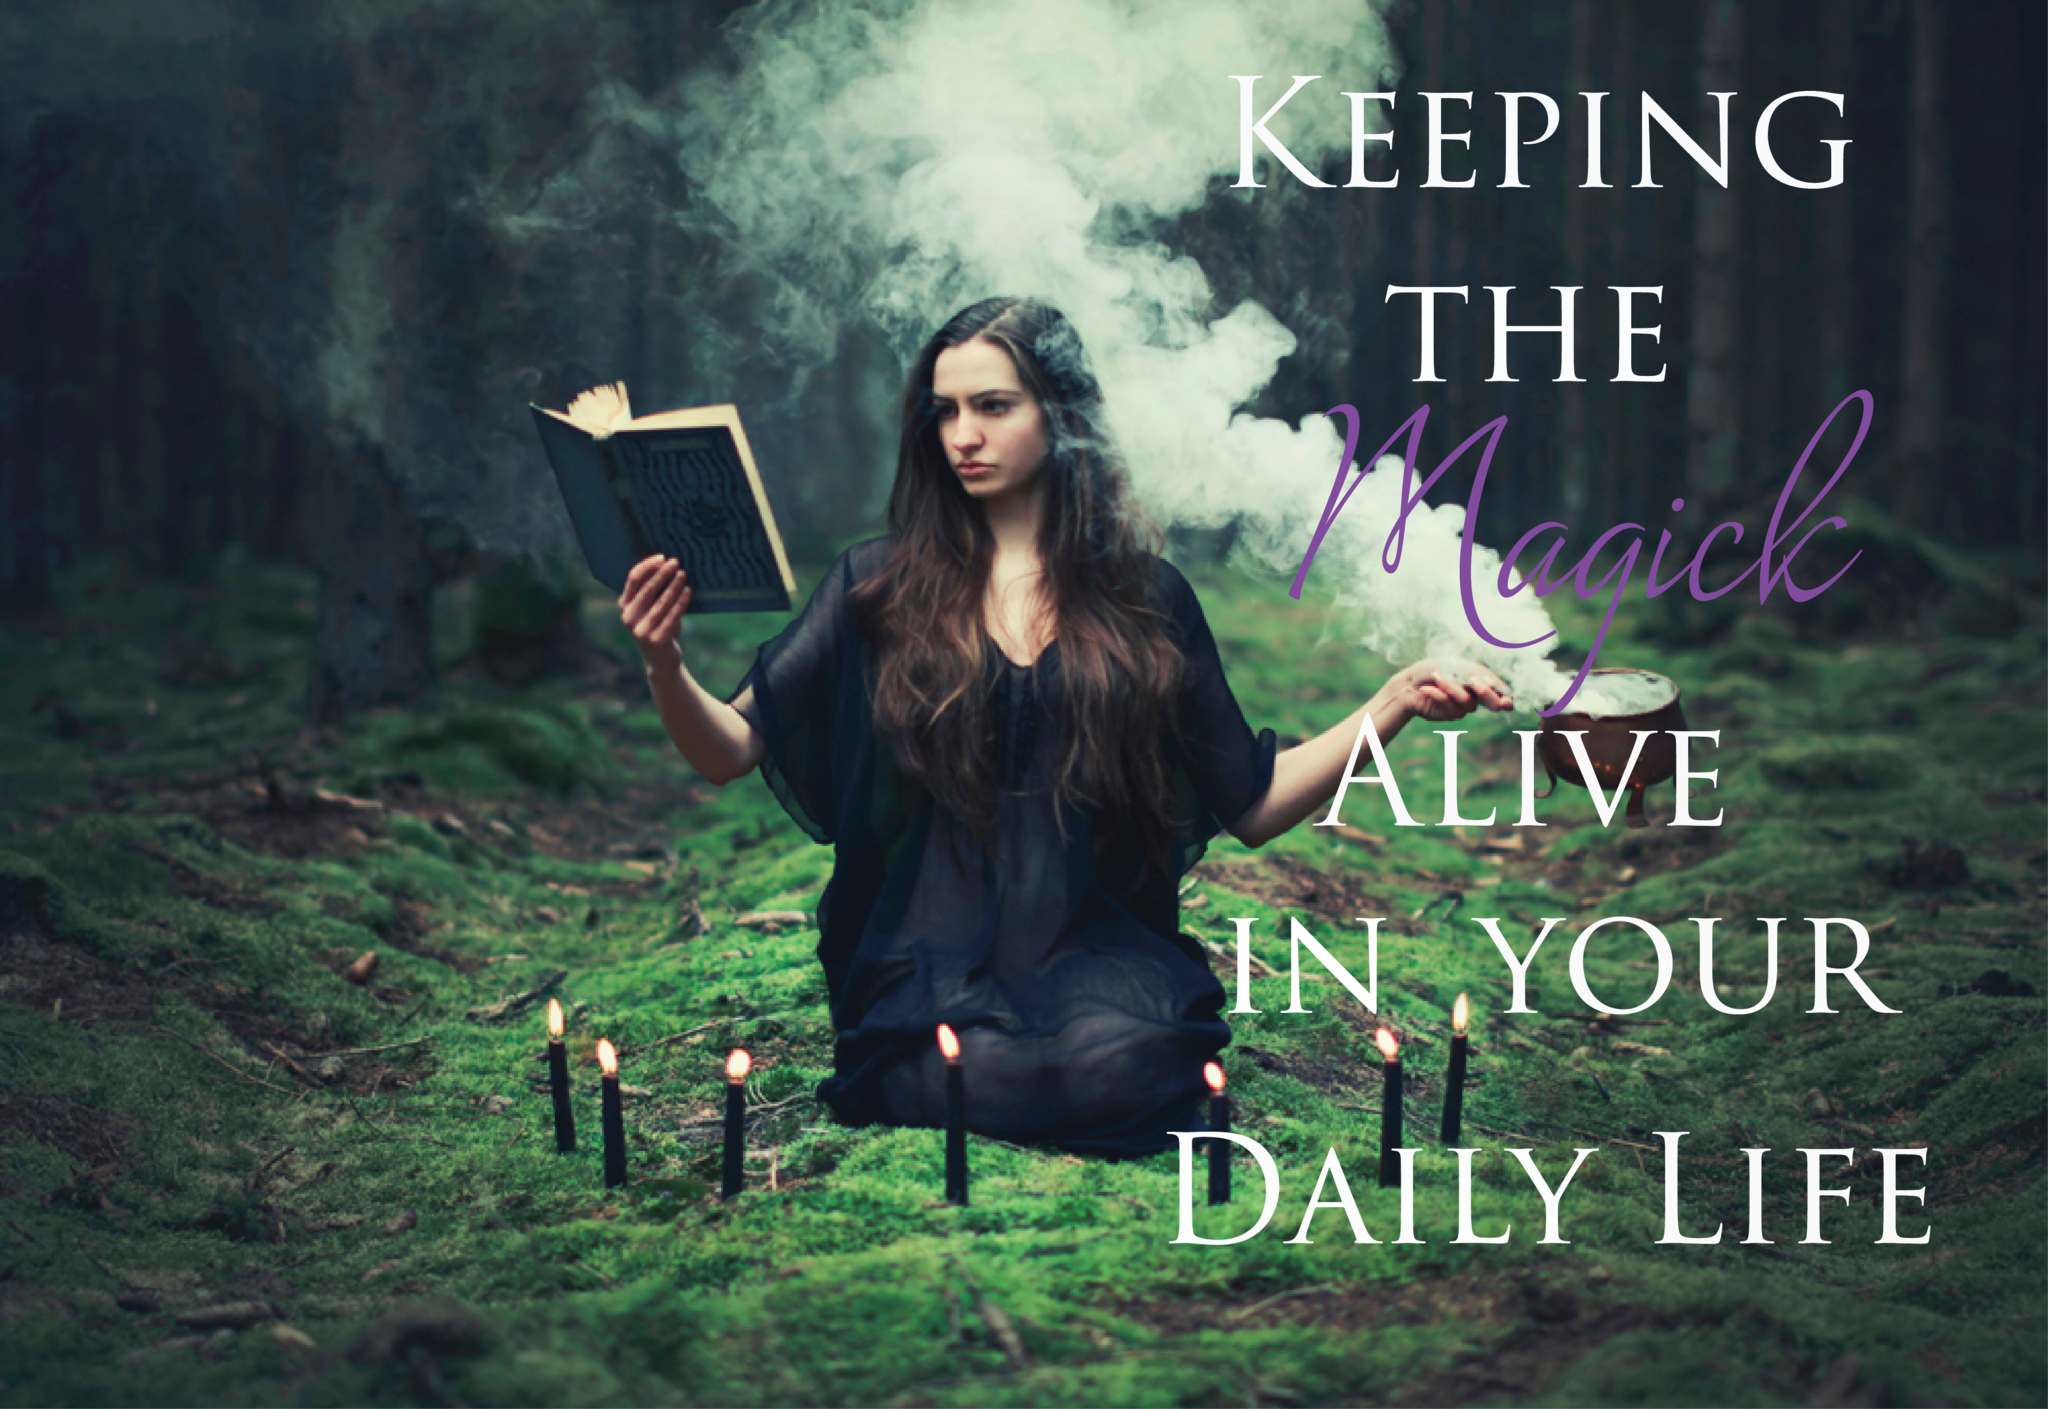 Keeping the Magick Alive in your Daily Life